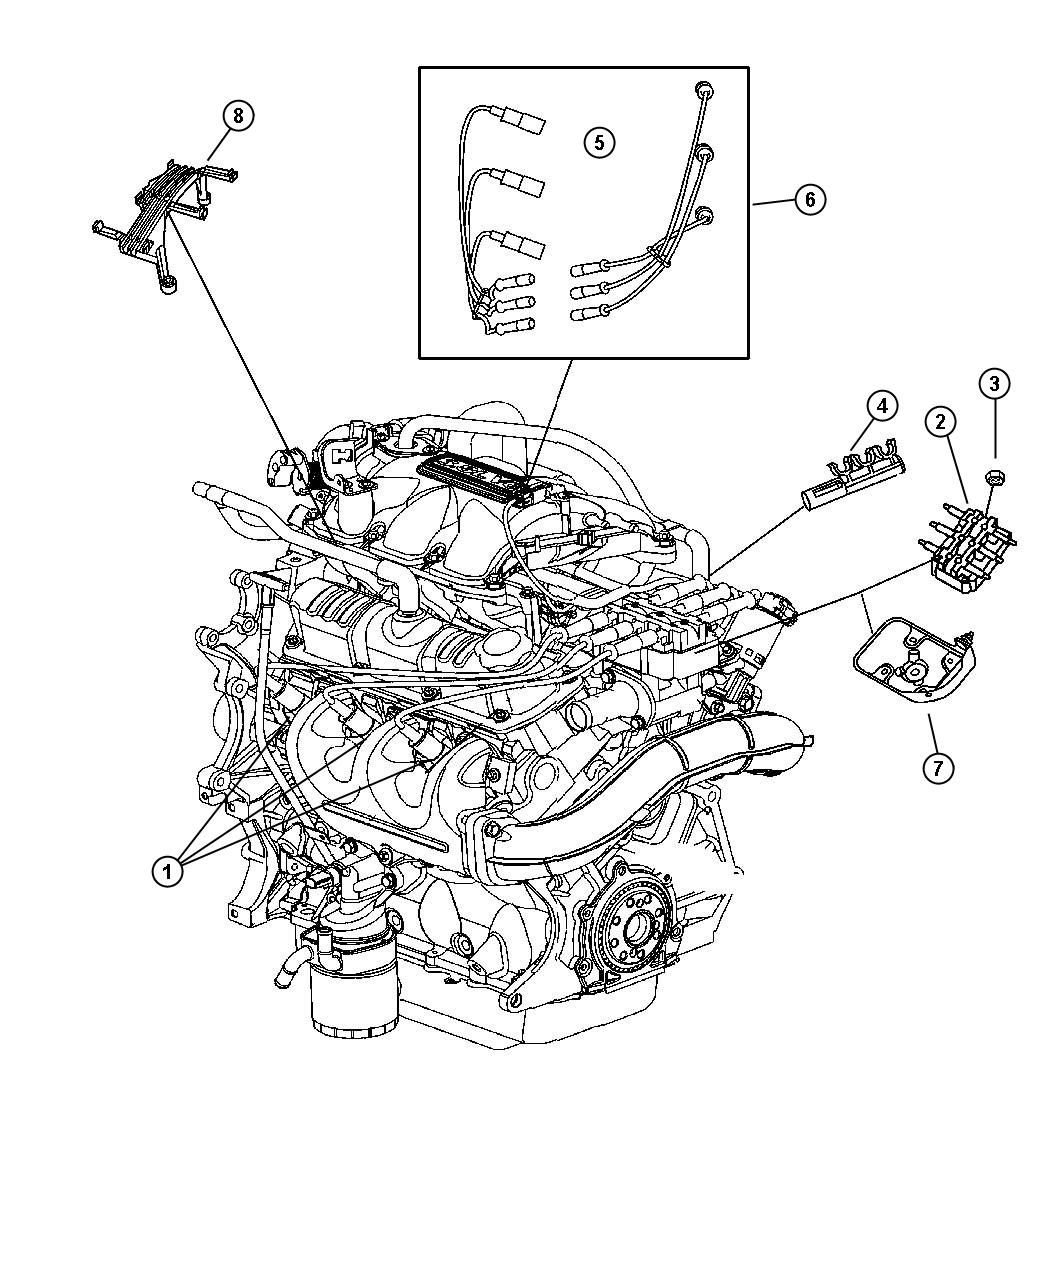 Diagram Chrysler Pacifica Engine Diagram Full